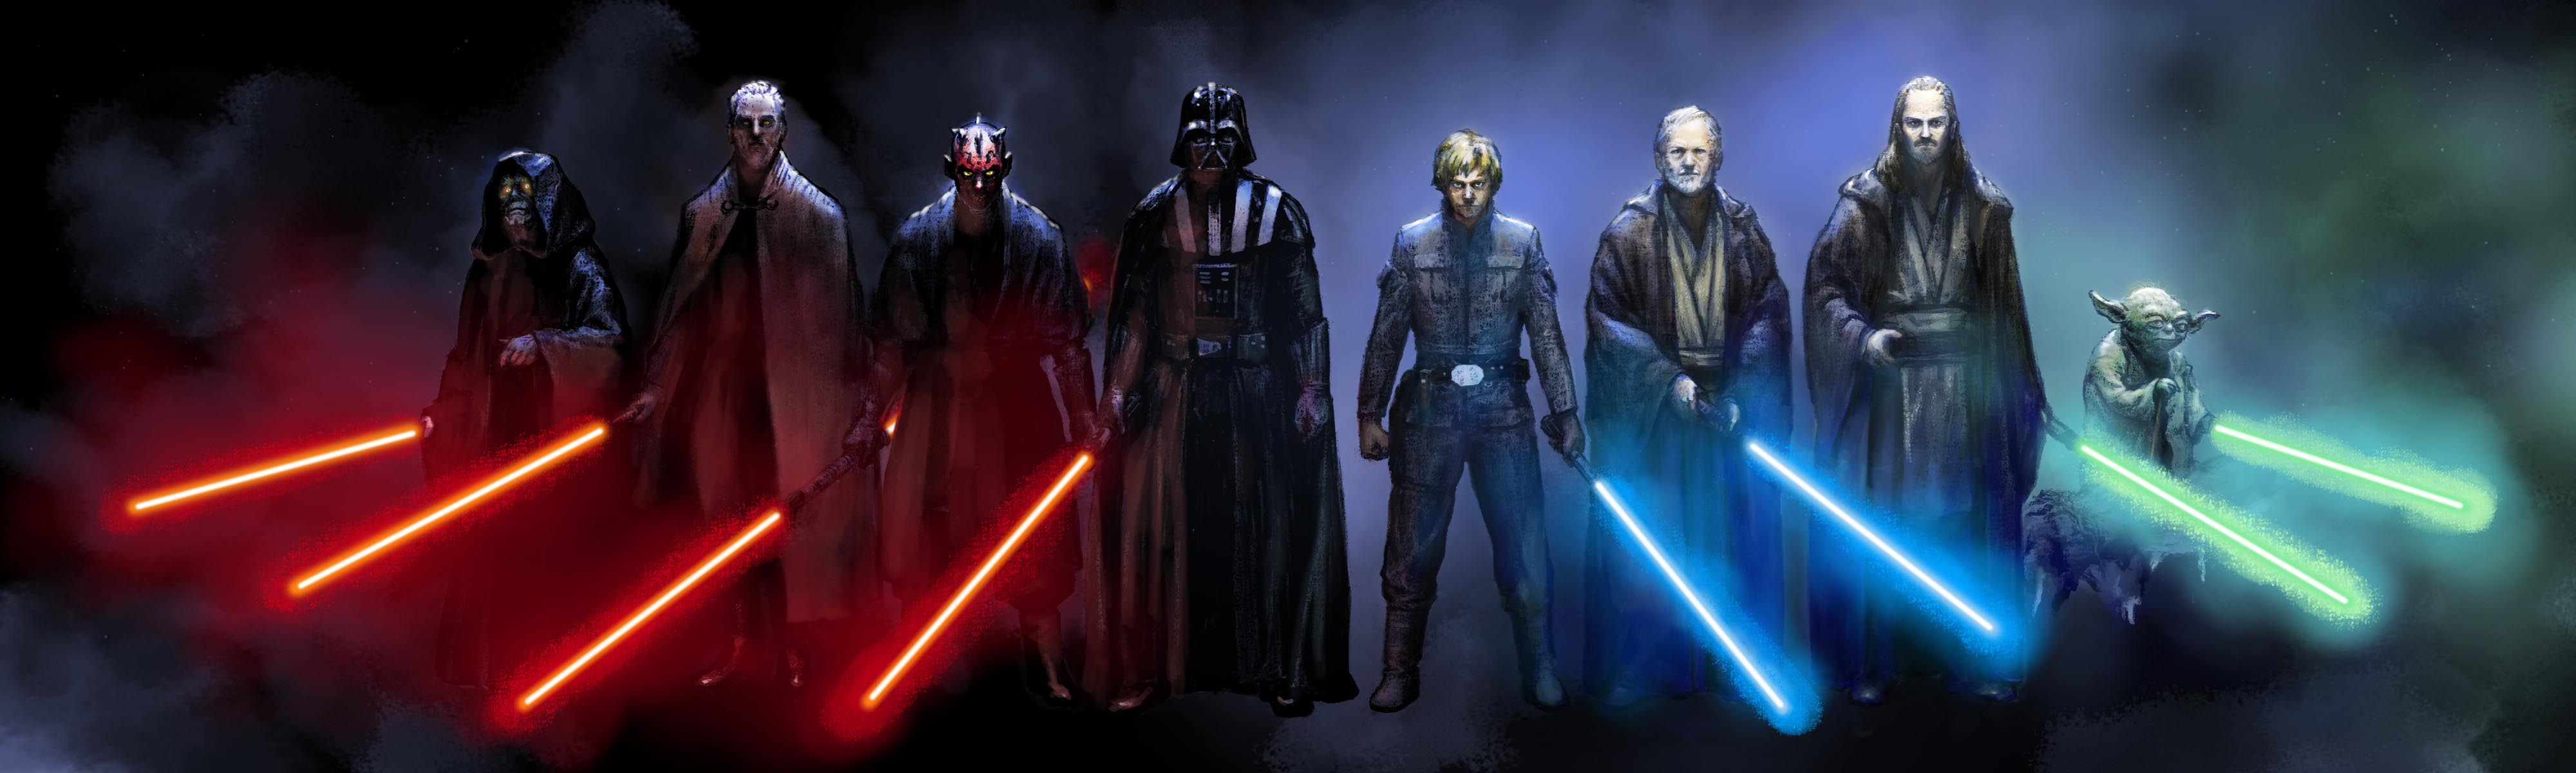 now owning the rights to the Star Wars franchise and another 3 movies 4000x1200